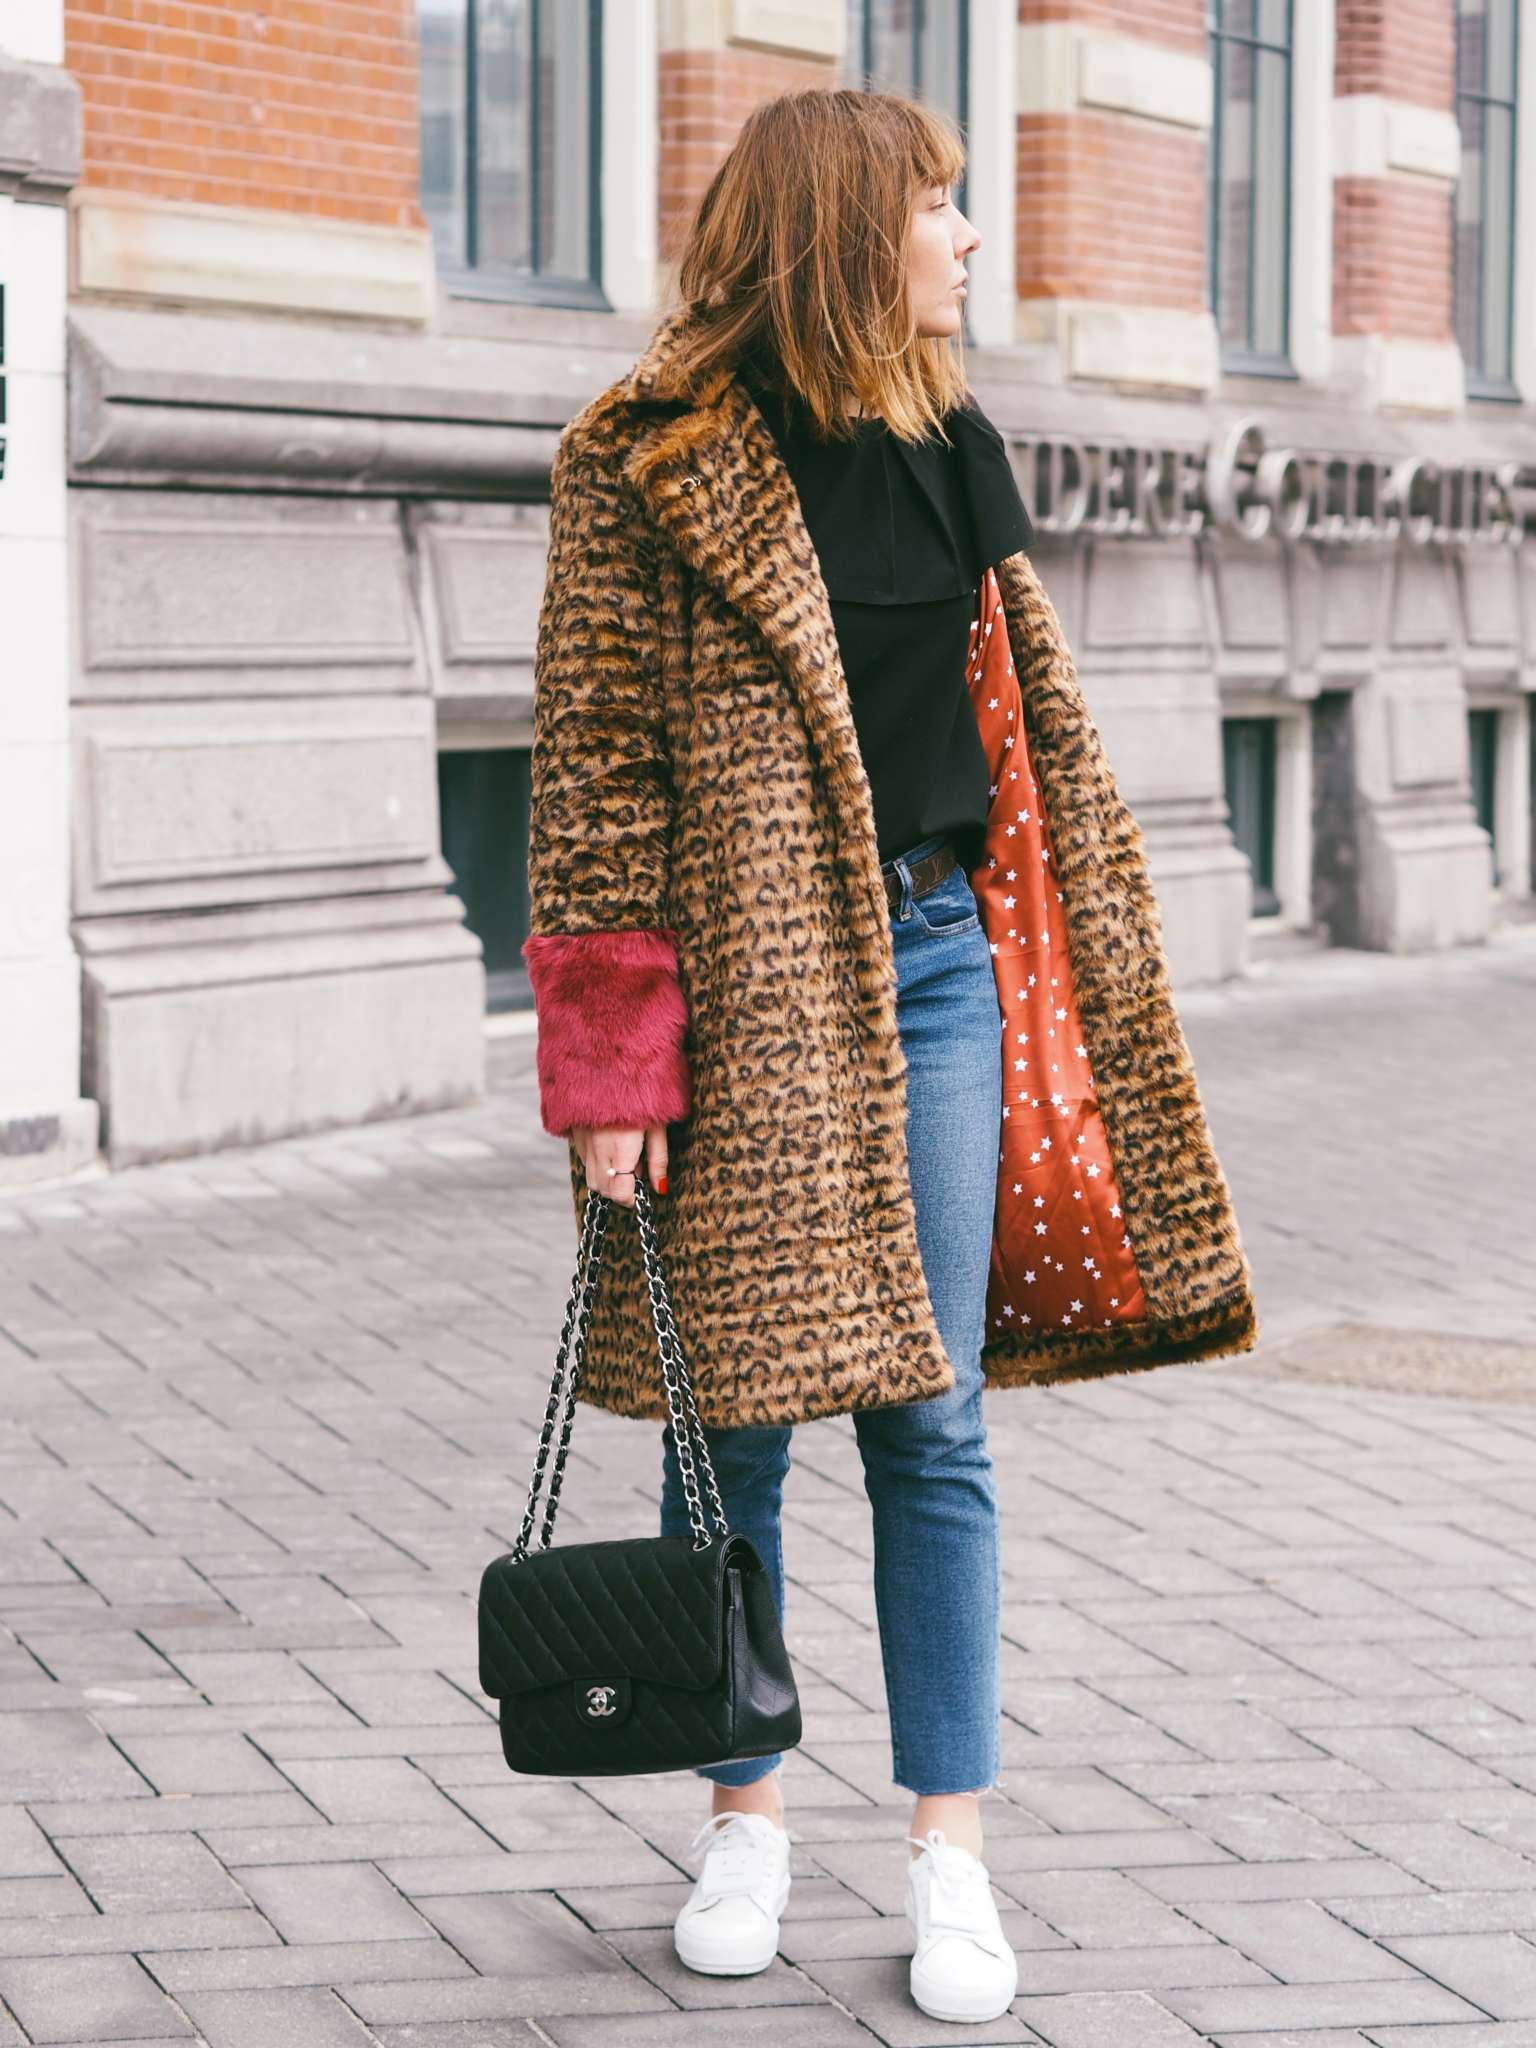 nickyinsideout - leopard print - new year resolutions - fall/winter inspiration - Etsy - faux fur - jacket/coat - street style - Etsy Resolution - full time blogger